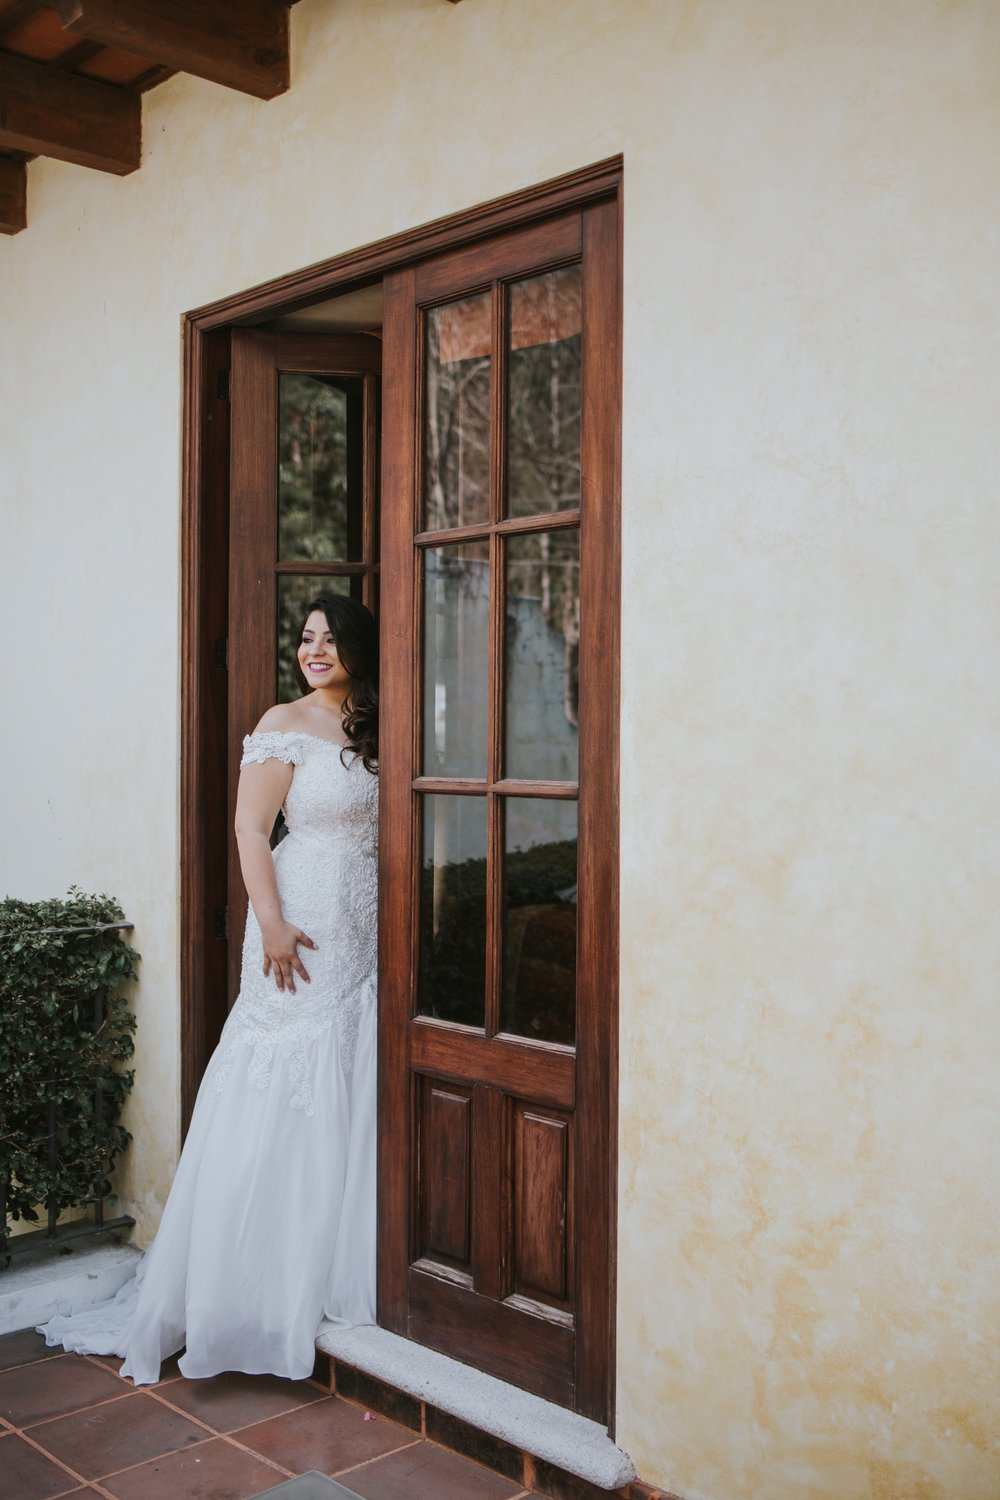 Le Cape Weddings - Creatives in Guatemala - Paulina and JP-7.jpg